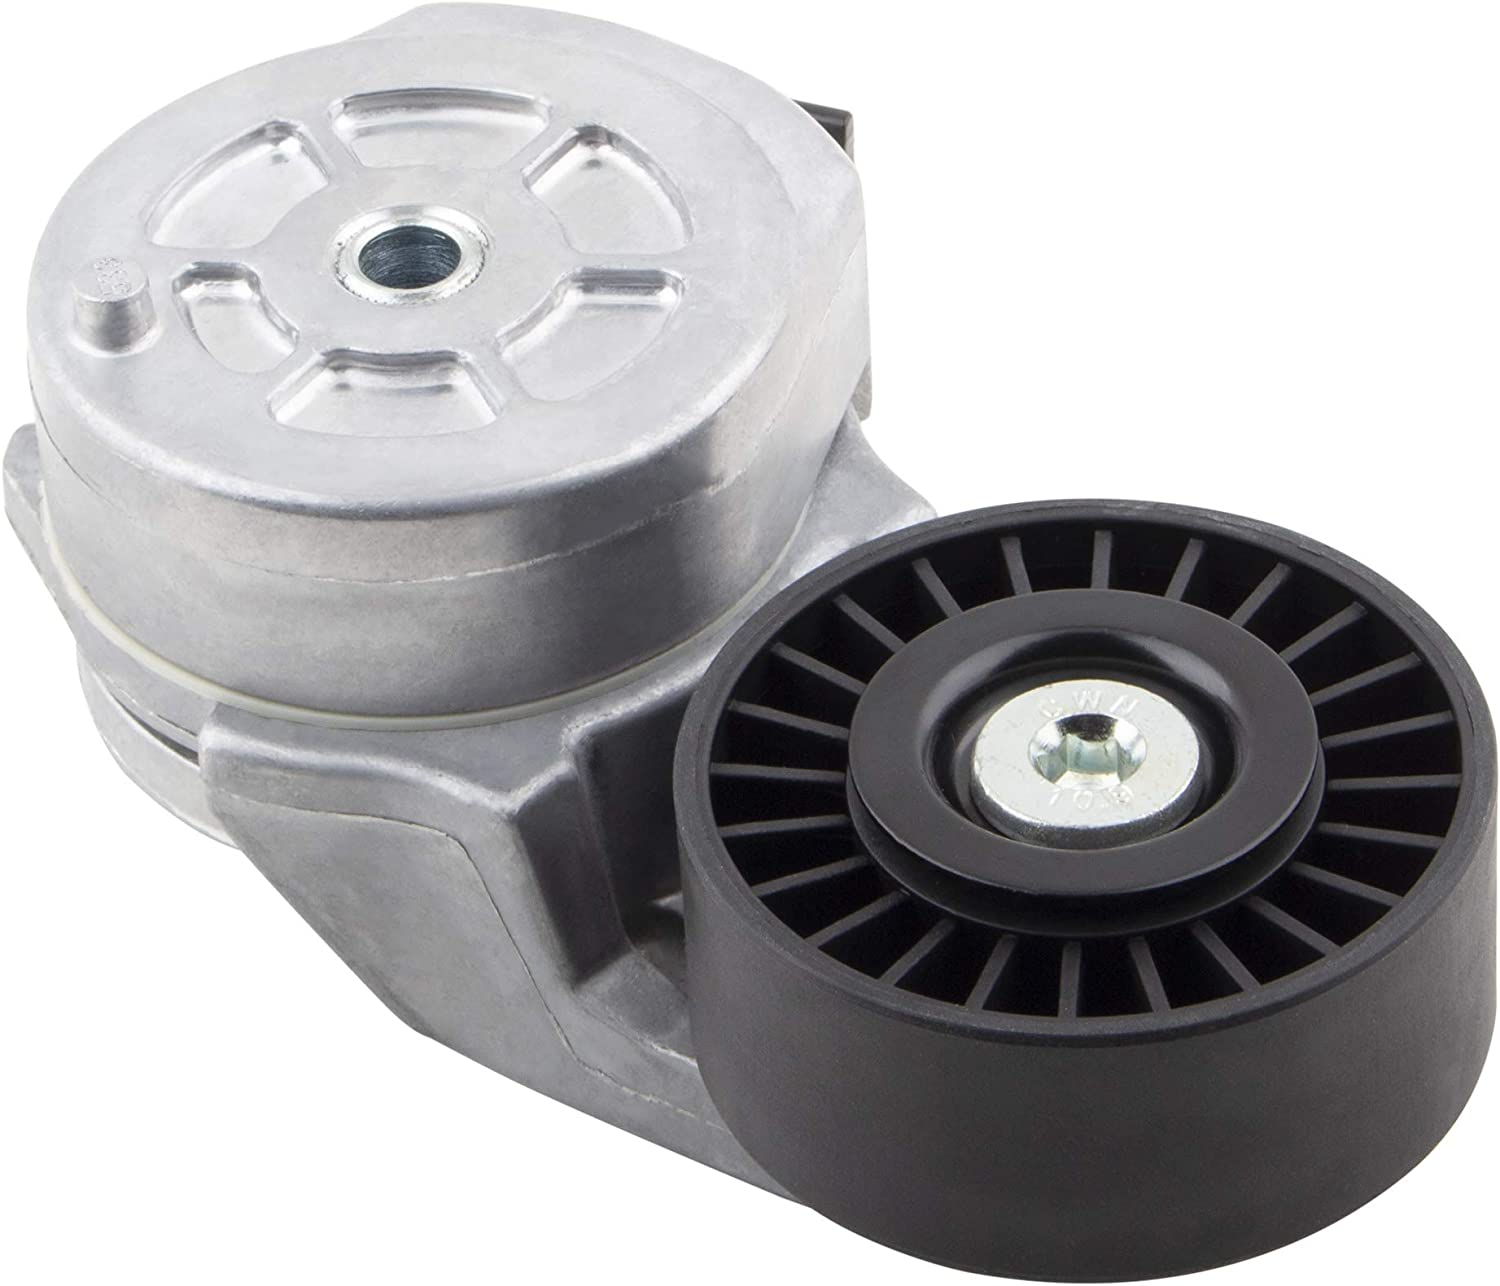 BOXI Belt Tensioner Assembly w for Fits 1989-1993 Dod-ge Indefinitely Pulley New products world's highest quality popular